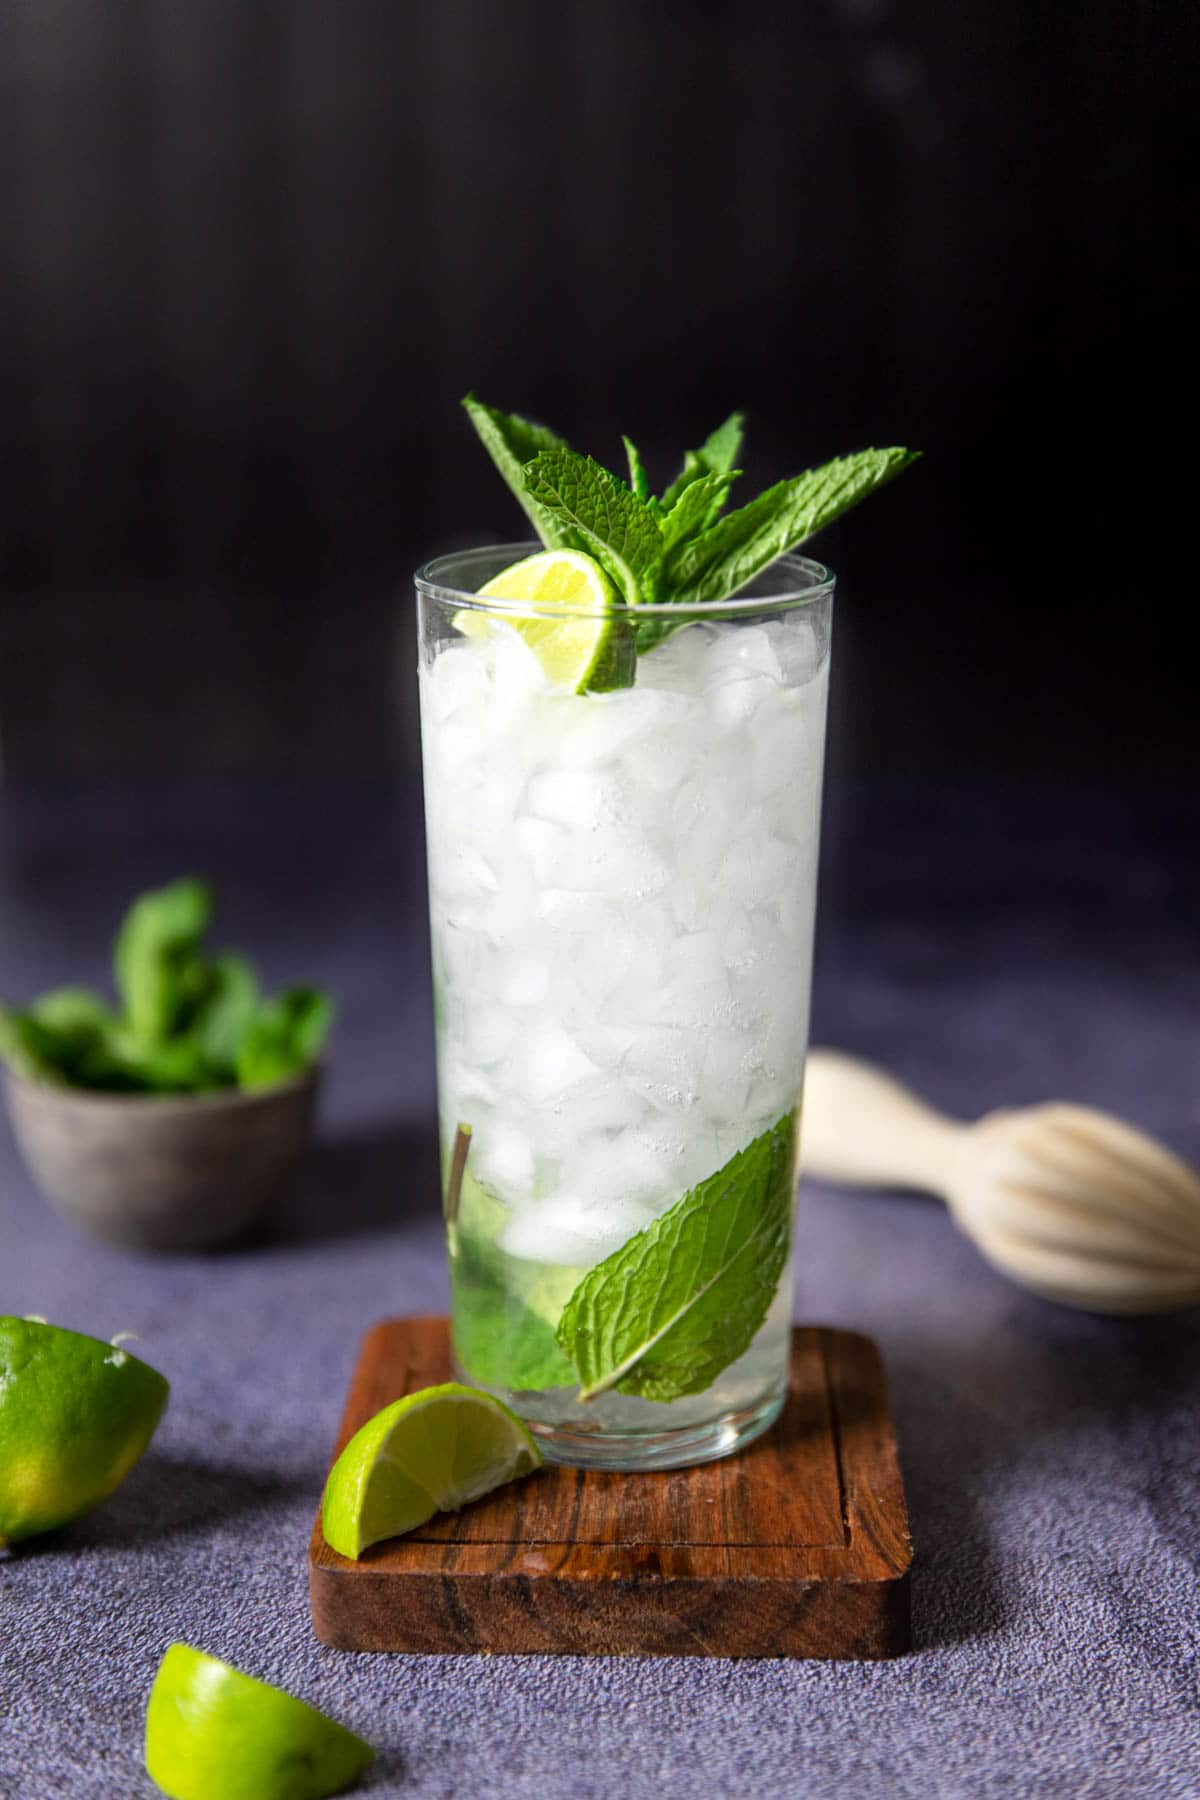 a collins glass with a tequila mojito and a mint garnish